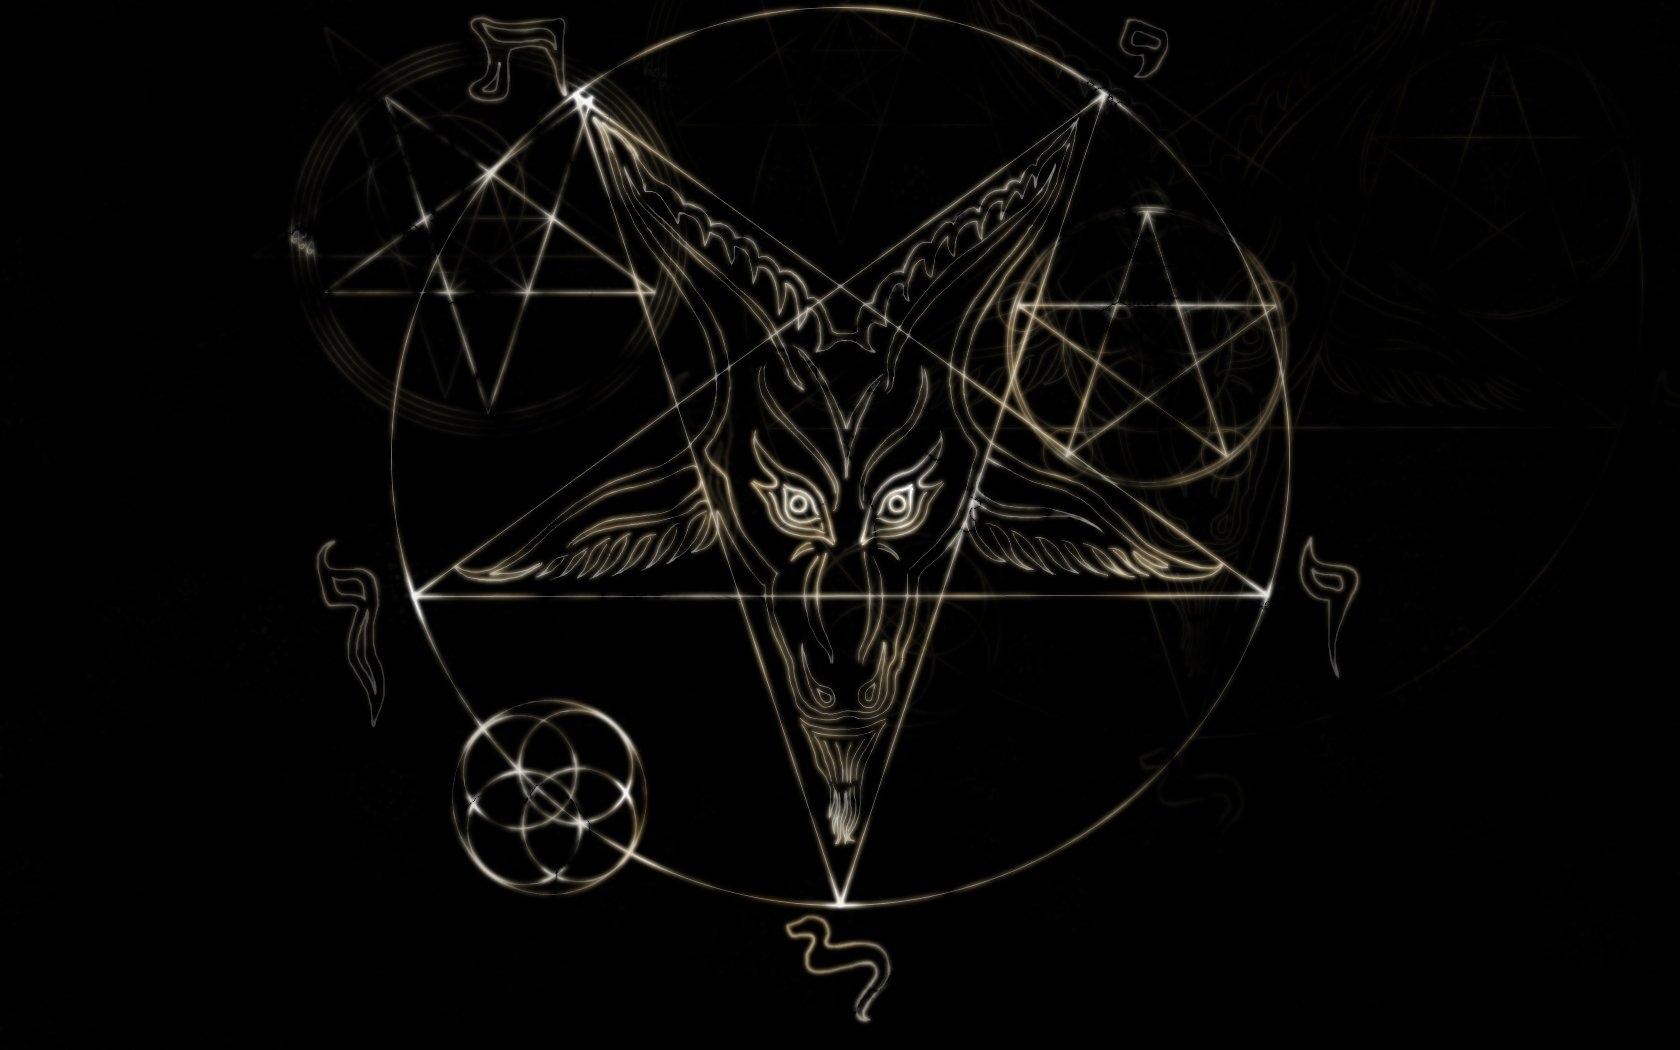 Occult Computer Wallpapers Desktop Backgrounds 1680x1050 ID 1680x1050